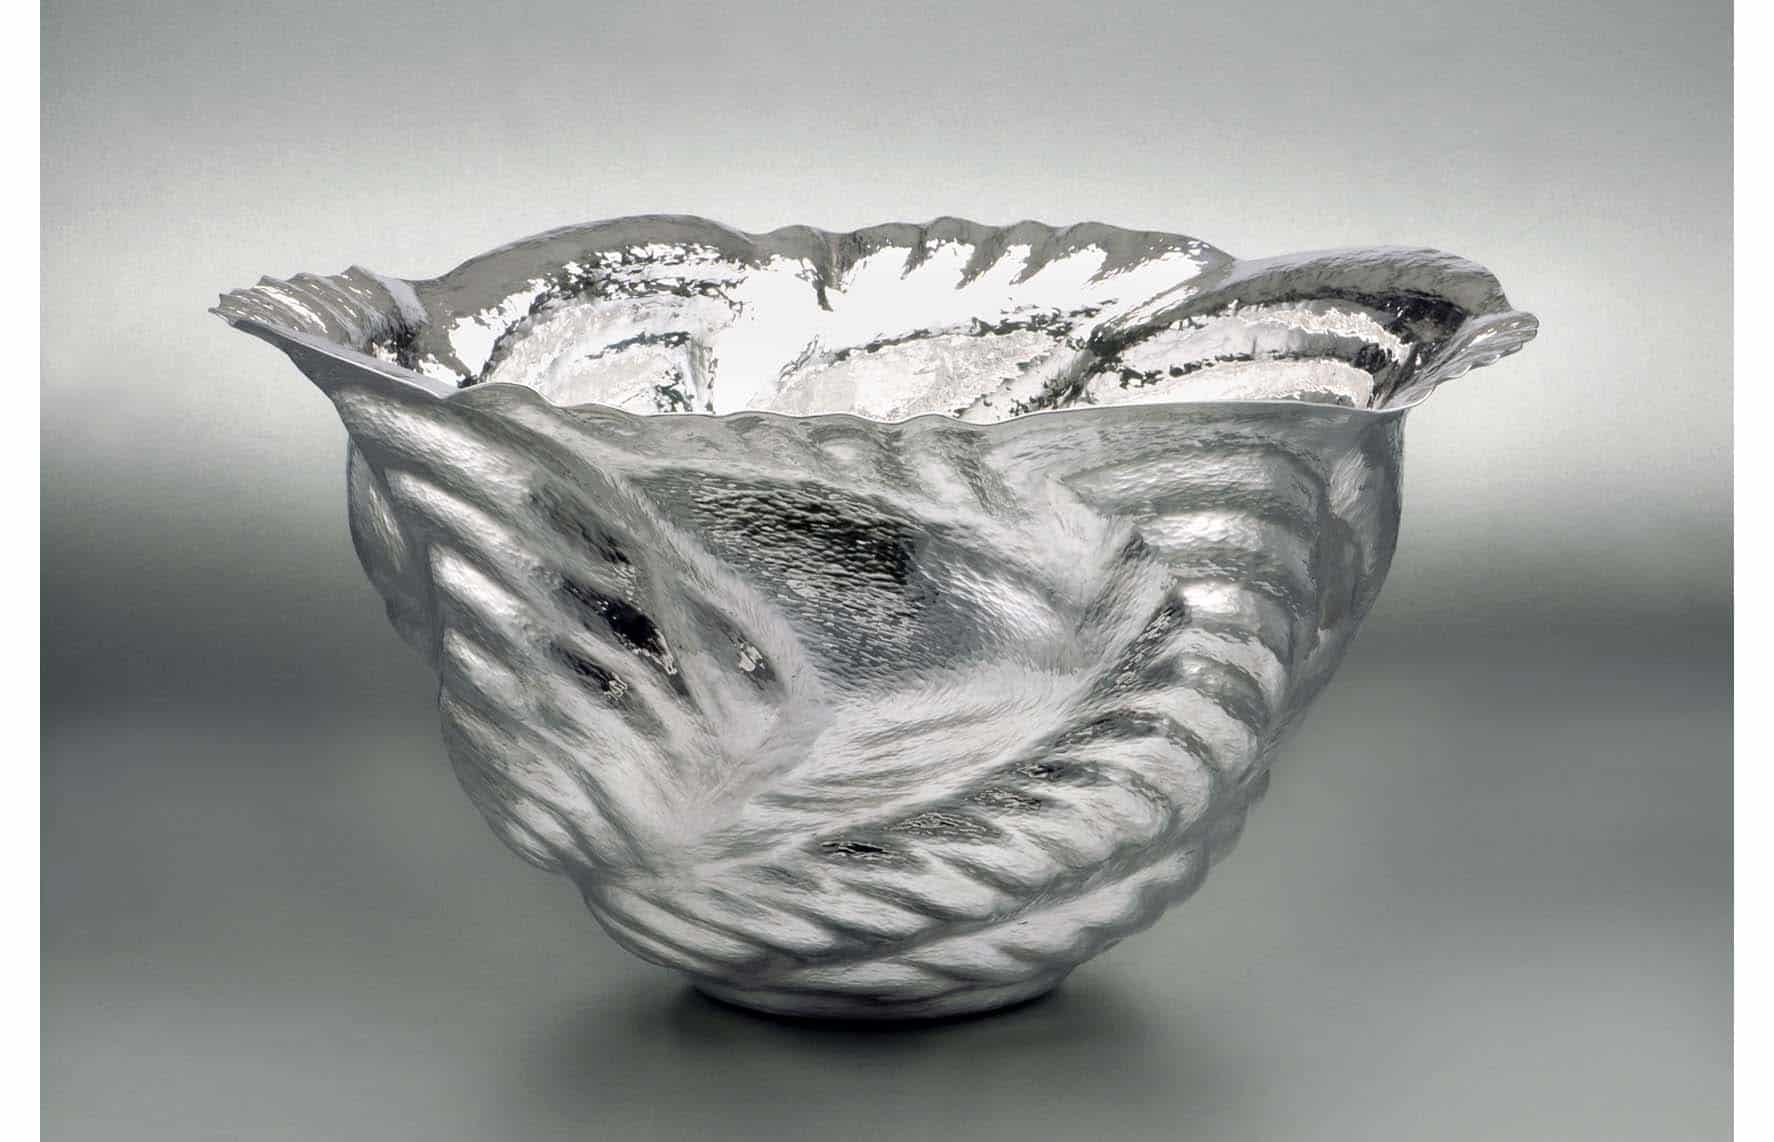 Silver sculpture by Ndidi Ekubia